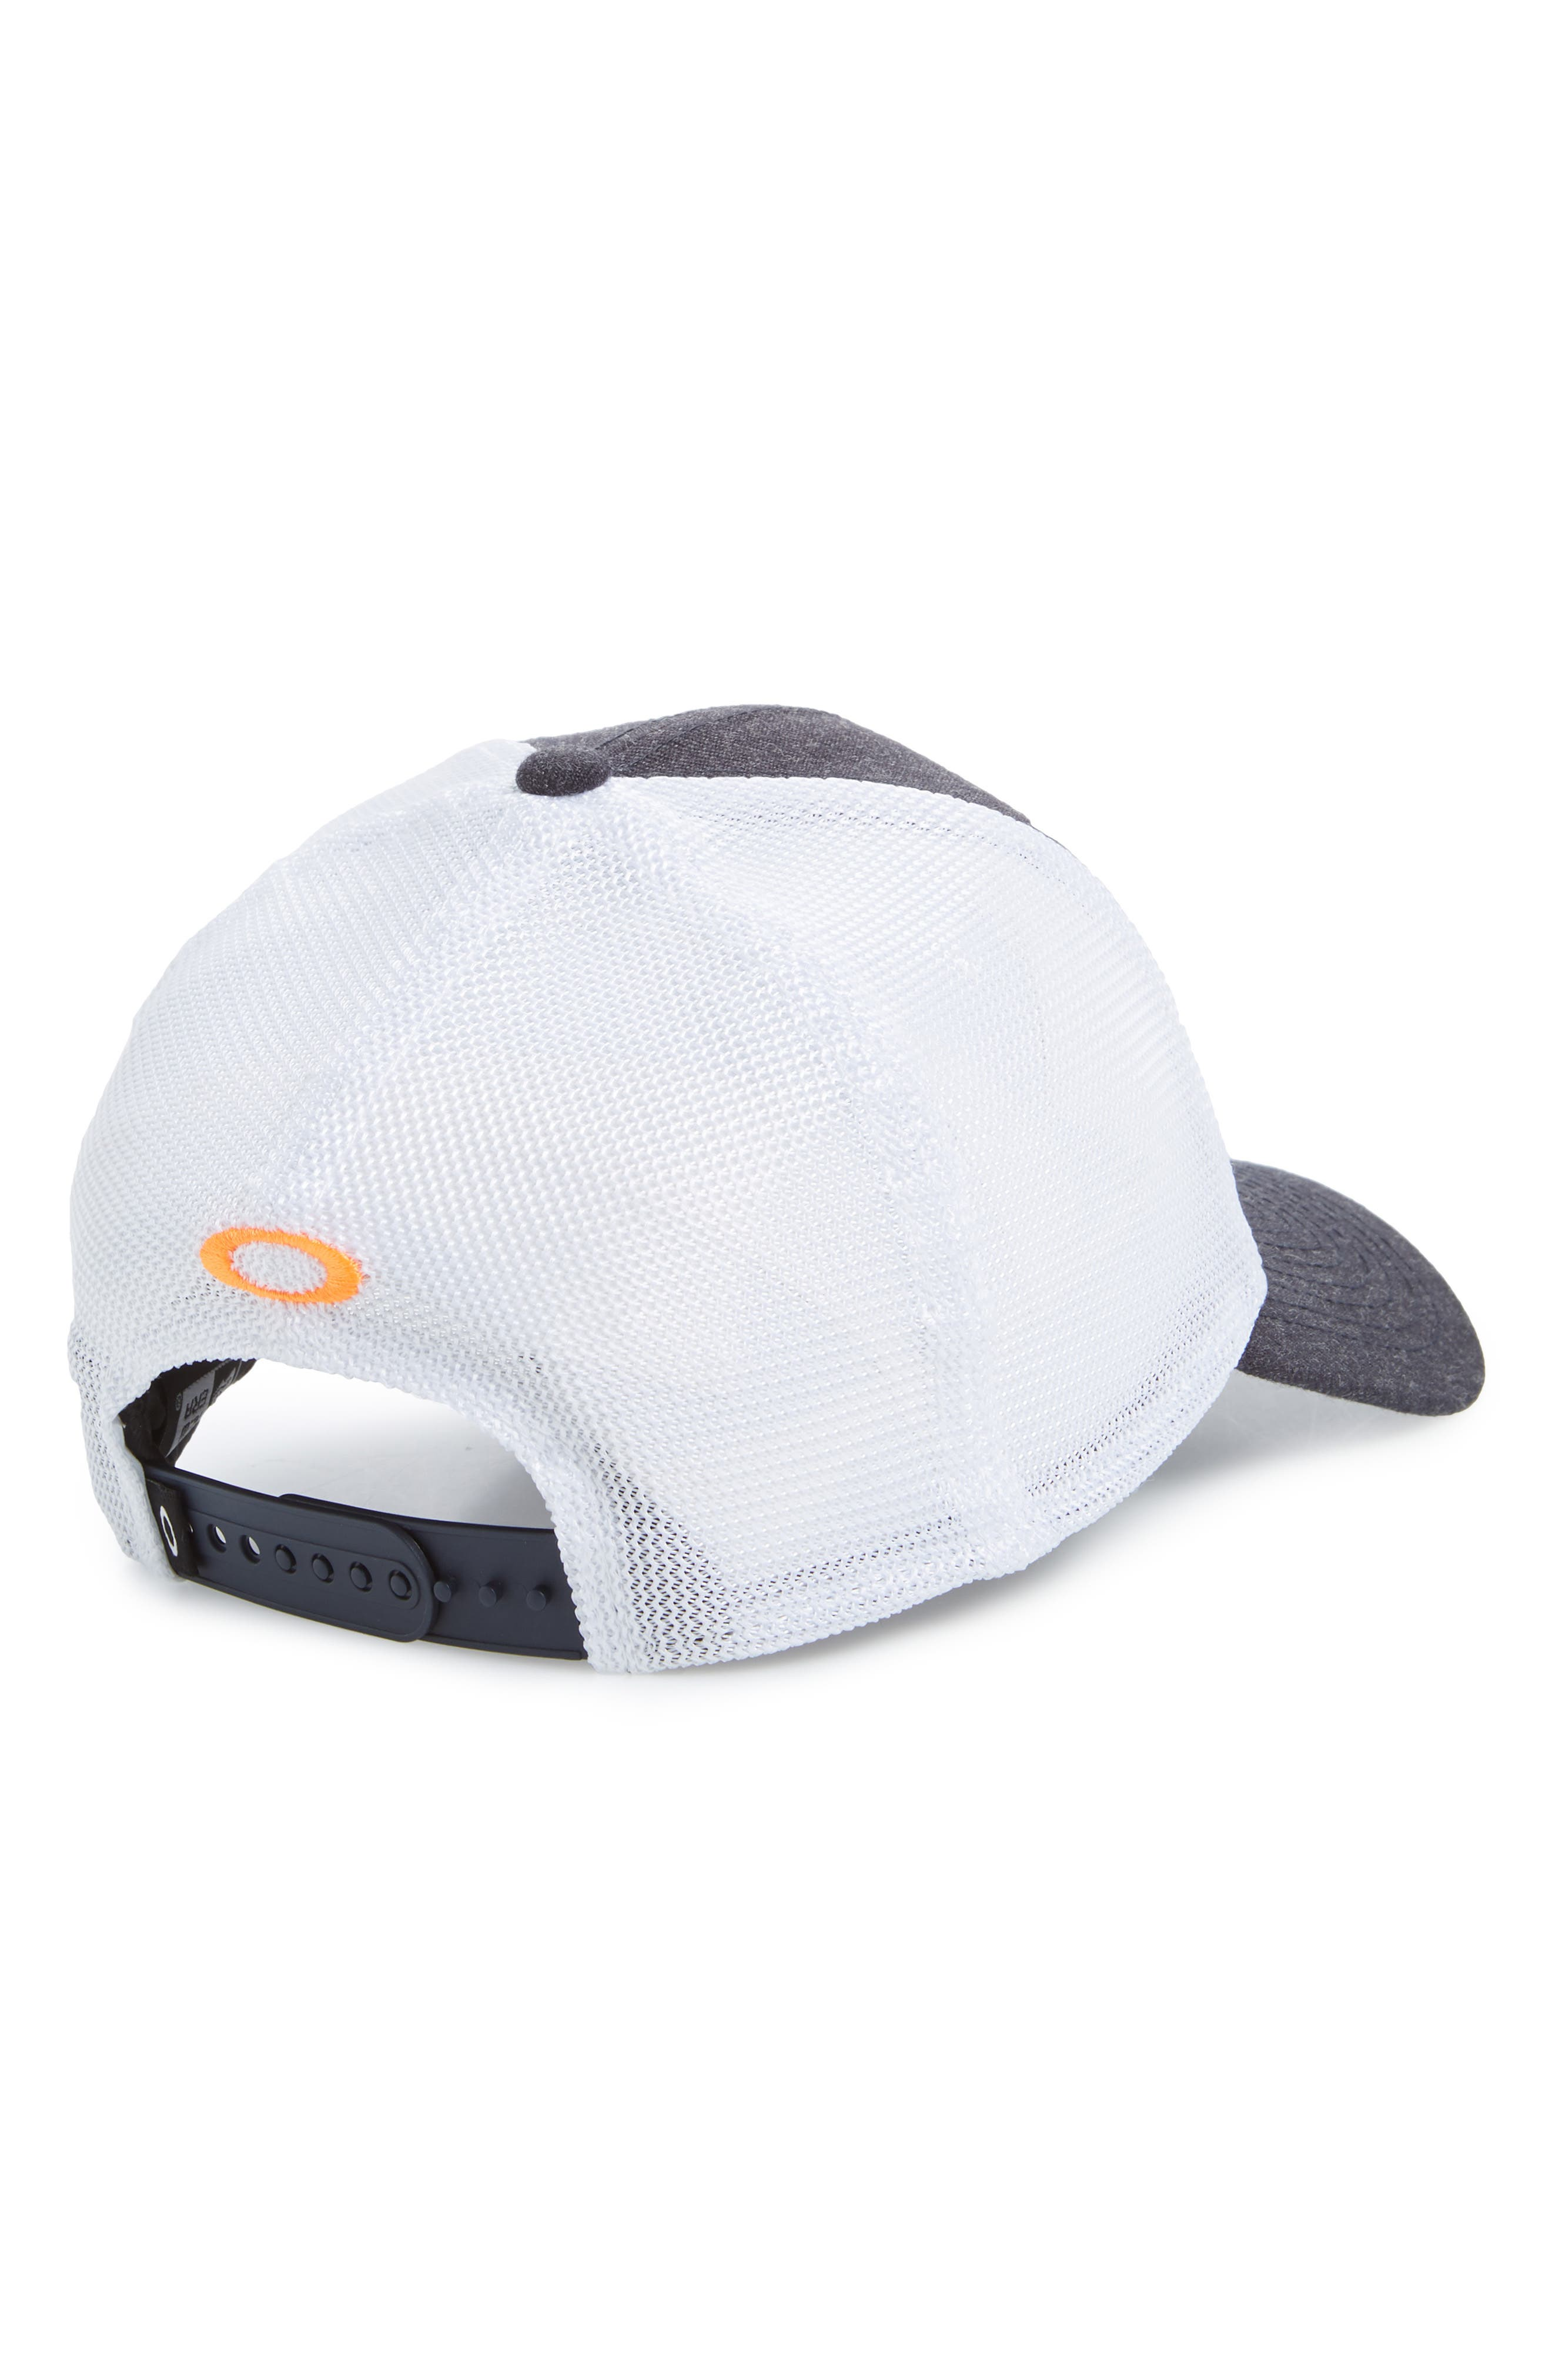 d4c6f41c4e976 Men s Oakley Hats